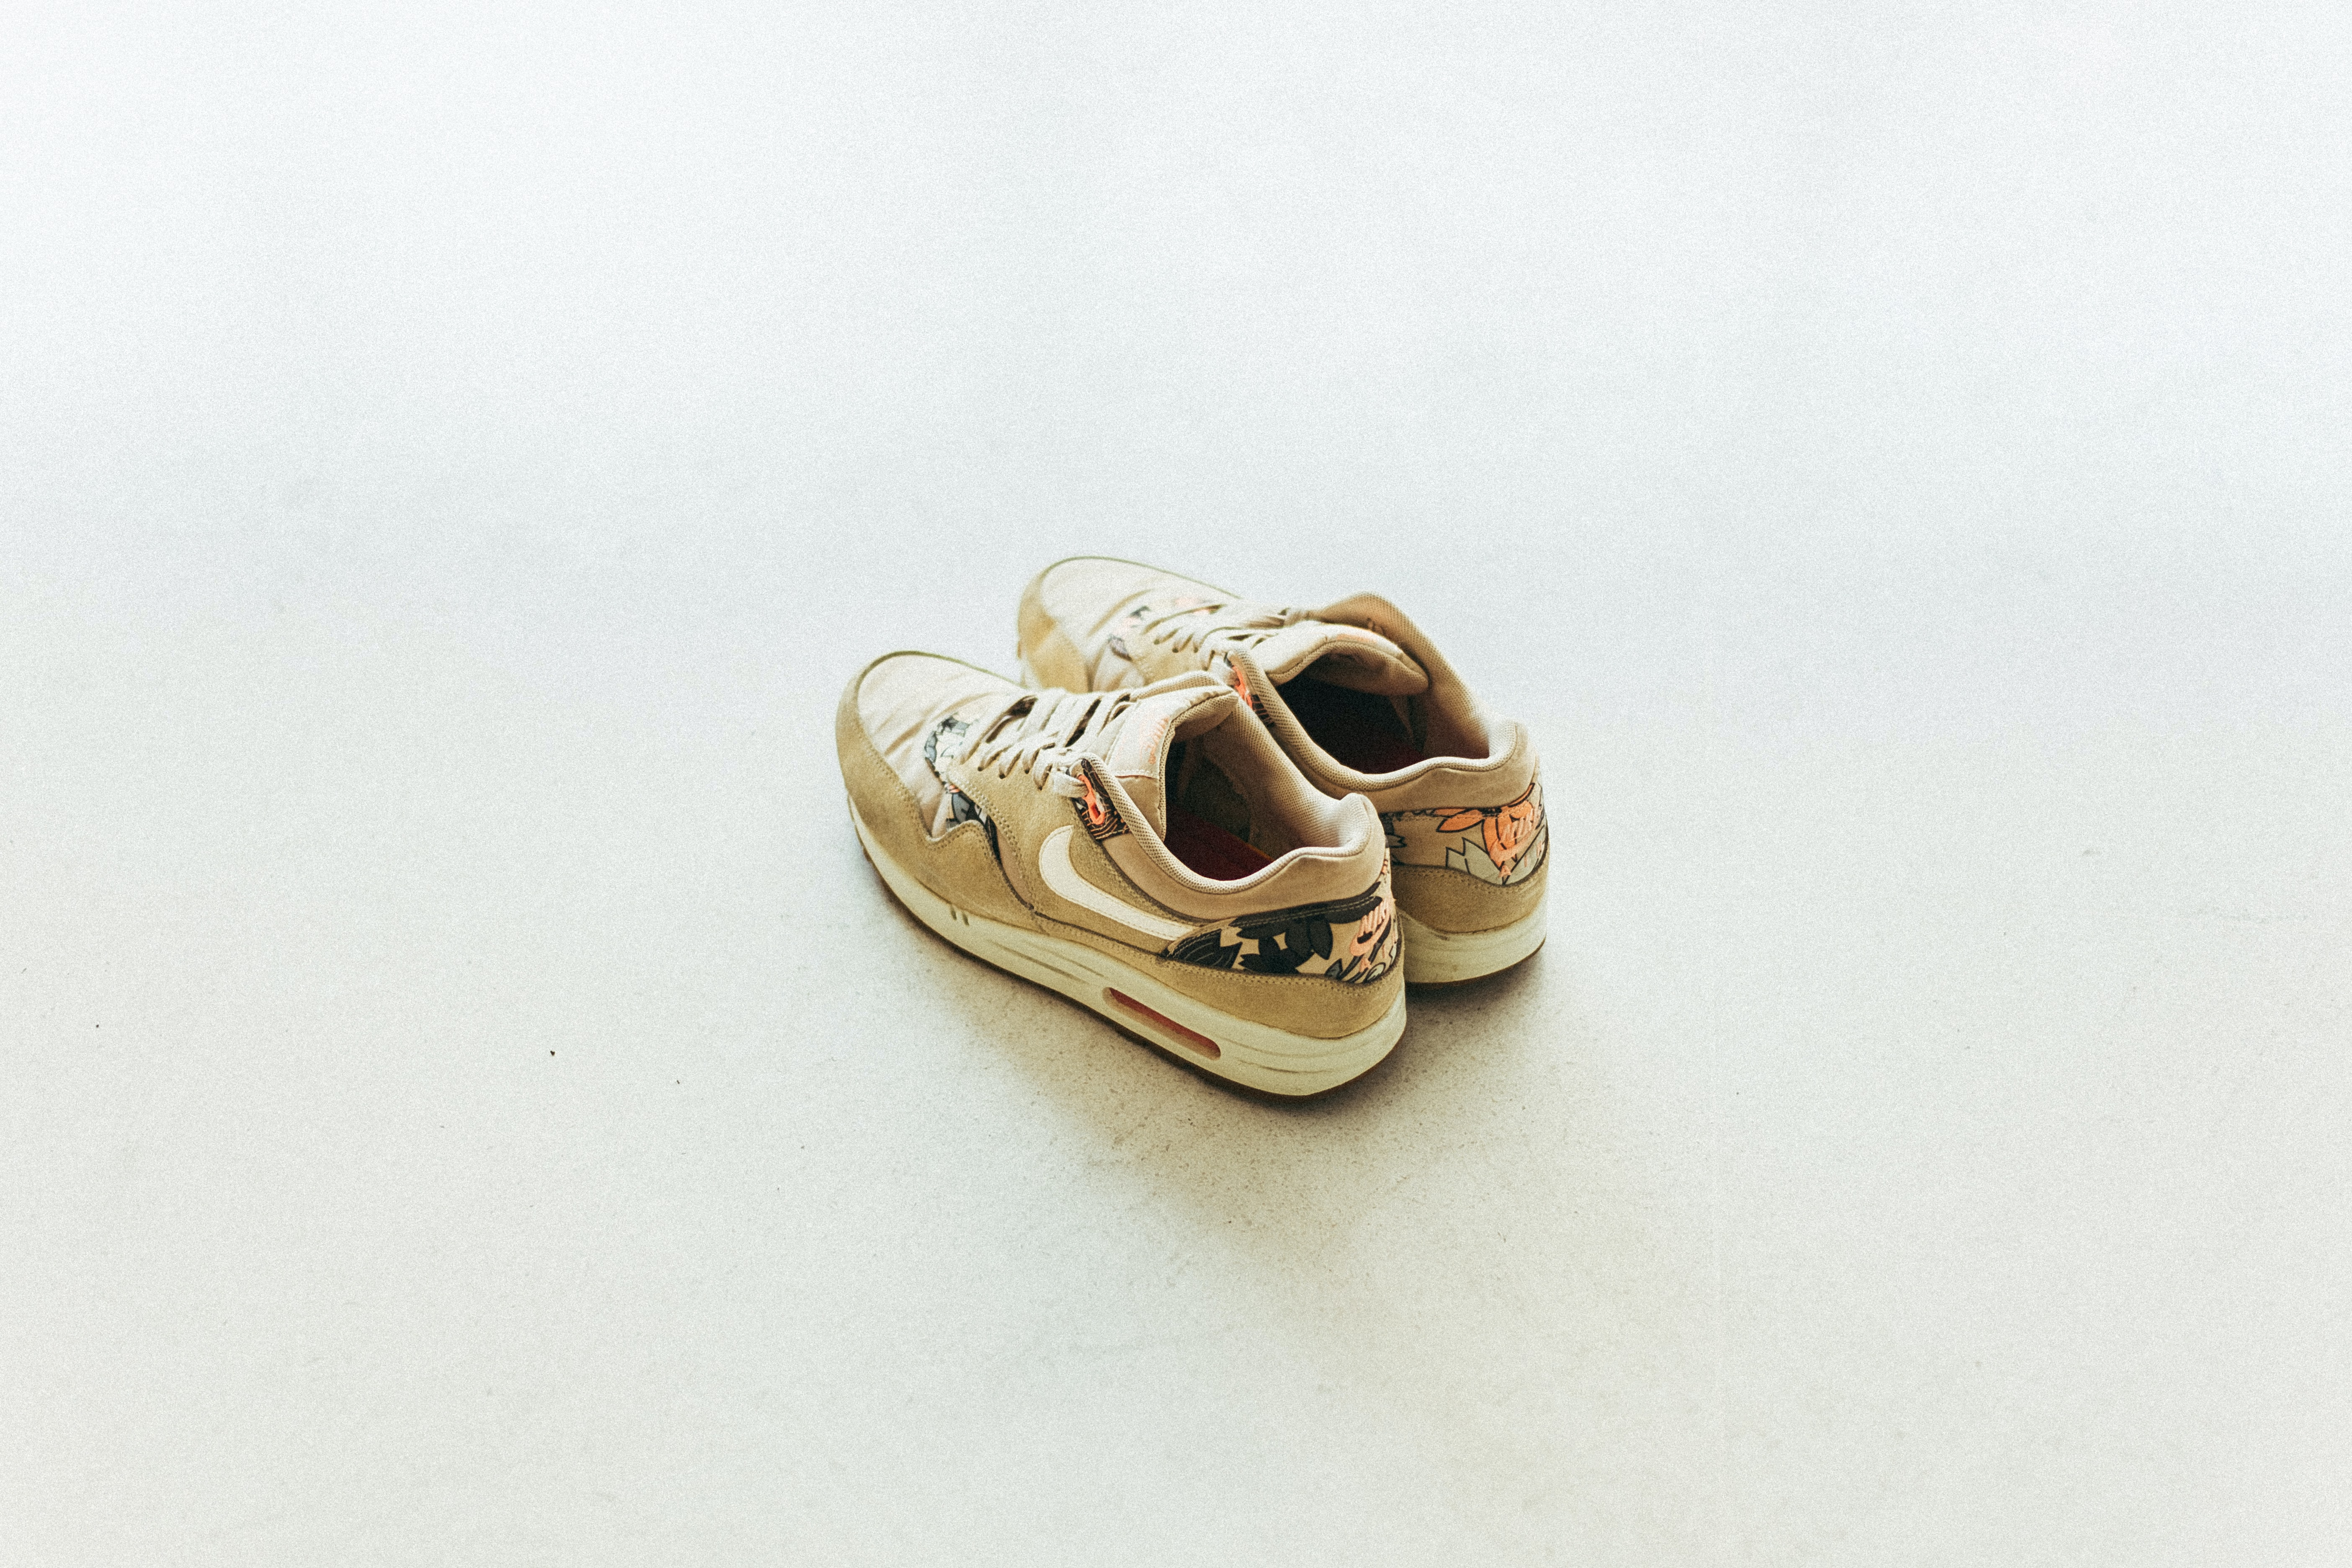 brown-and-white Nike low-top sneakers